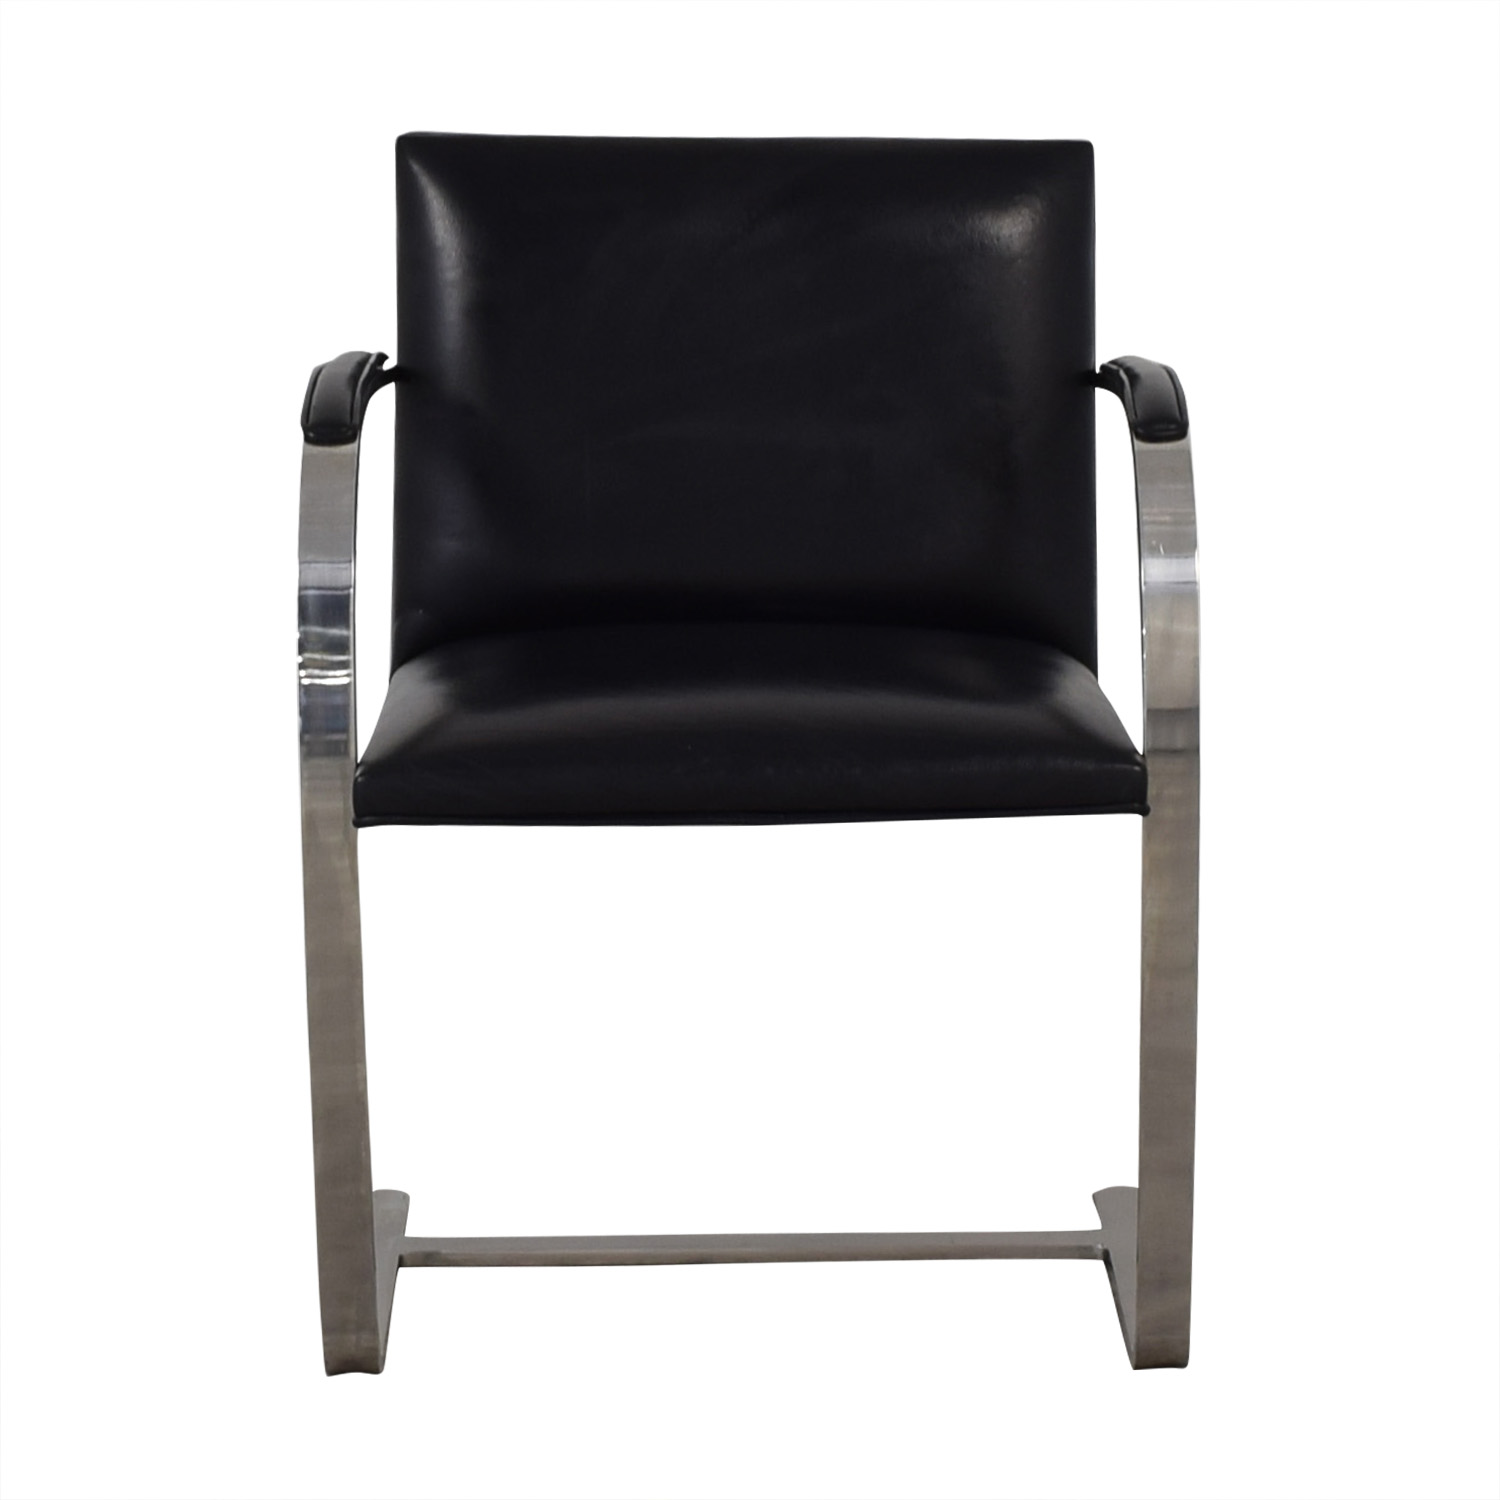 Knoll Knoll BRNO Chair price